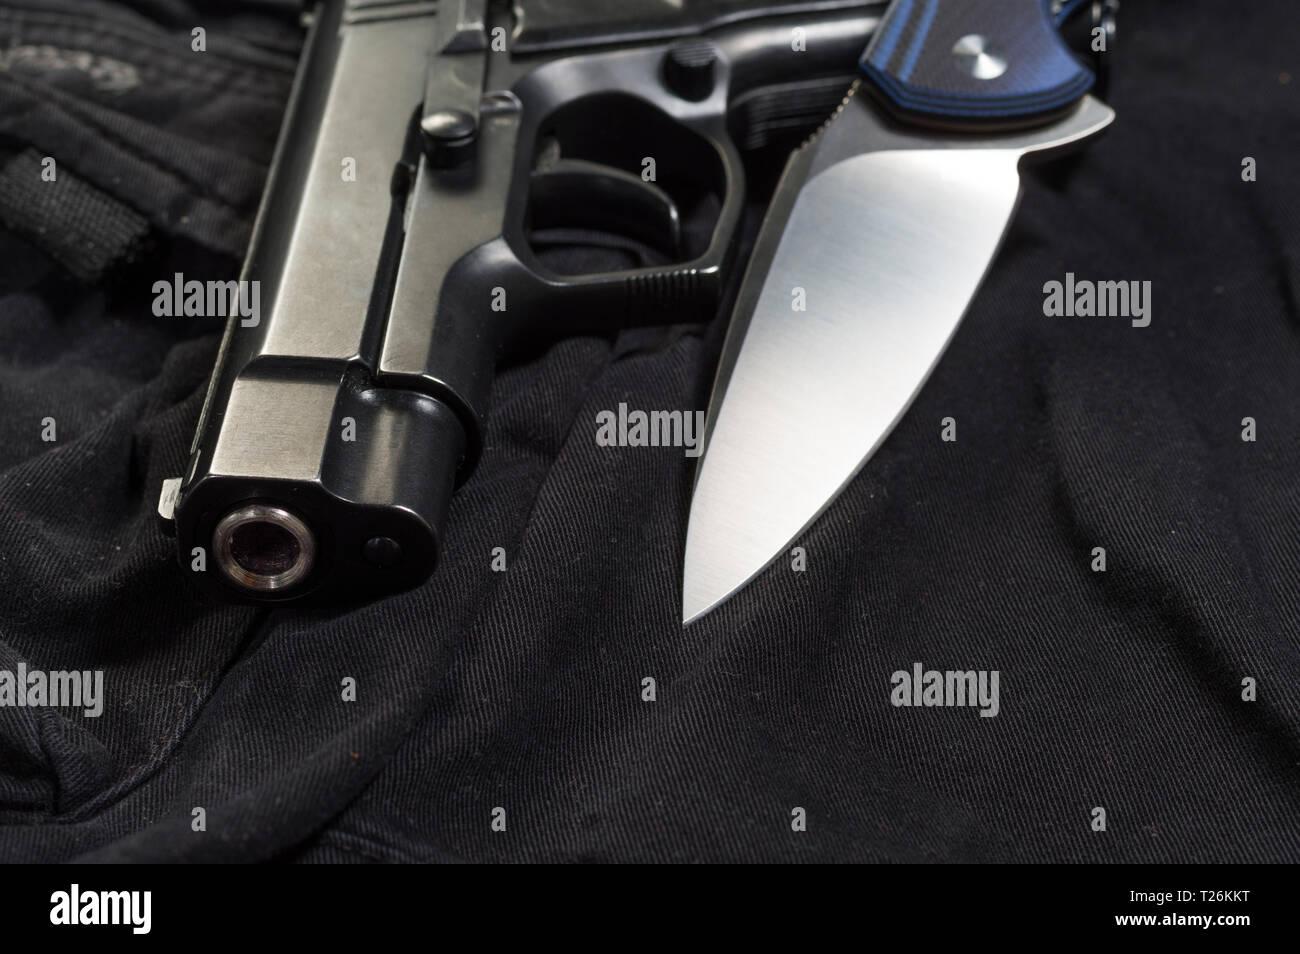 Muzzle pistol and knife blade. Weapon close-up. Front view. - Stock Image